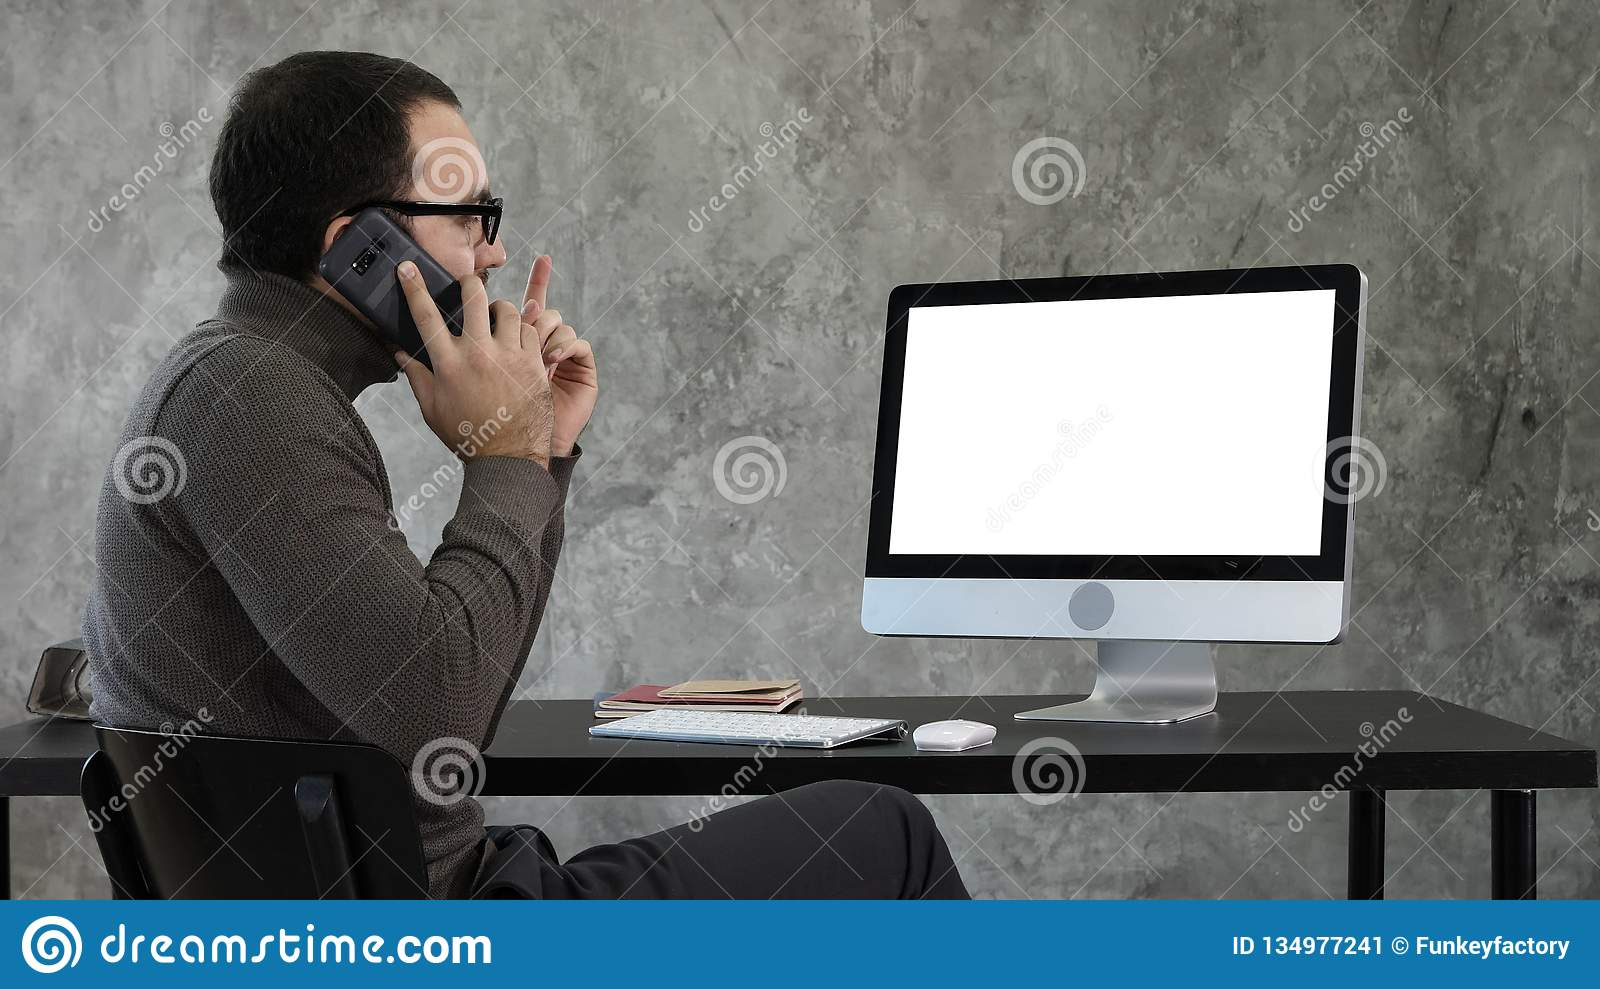 Male Designer Working At Computer In Contemporary Office. He talks on the phone and looking on what is on the screen